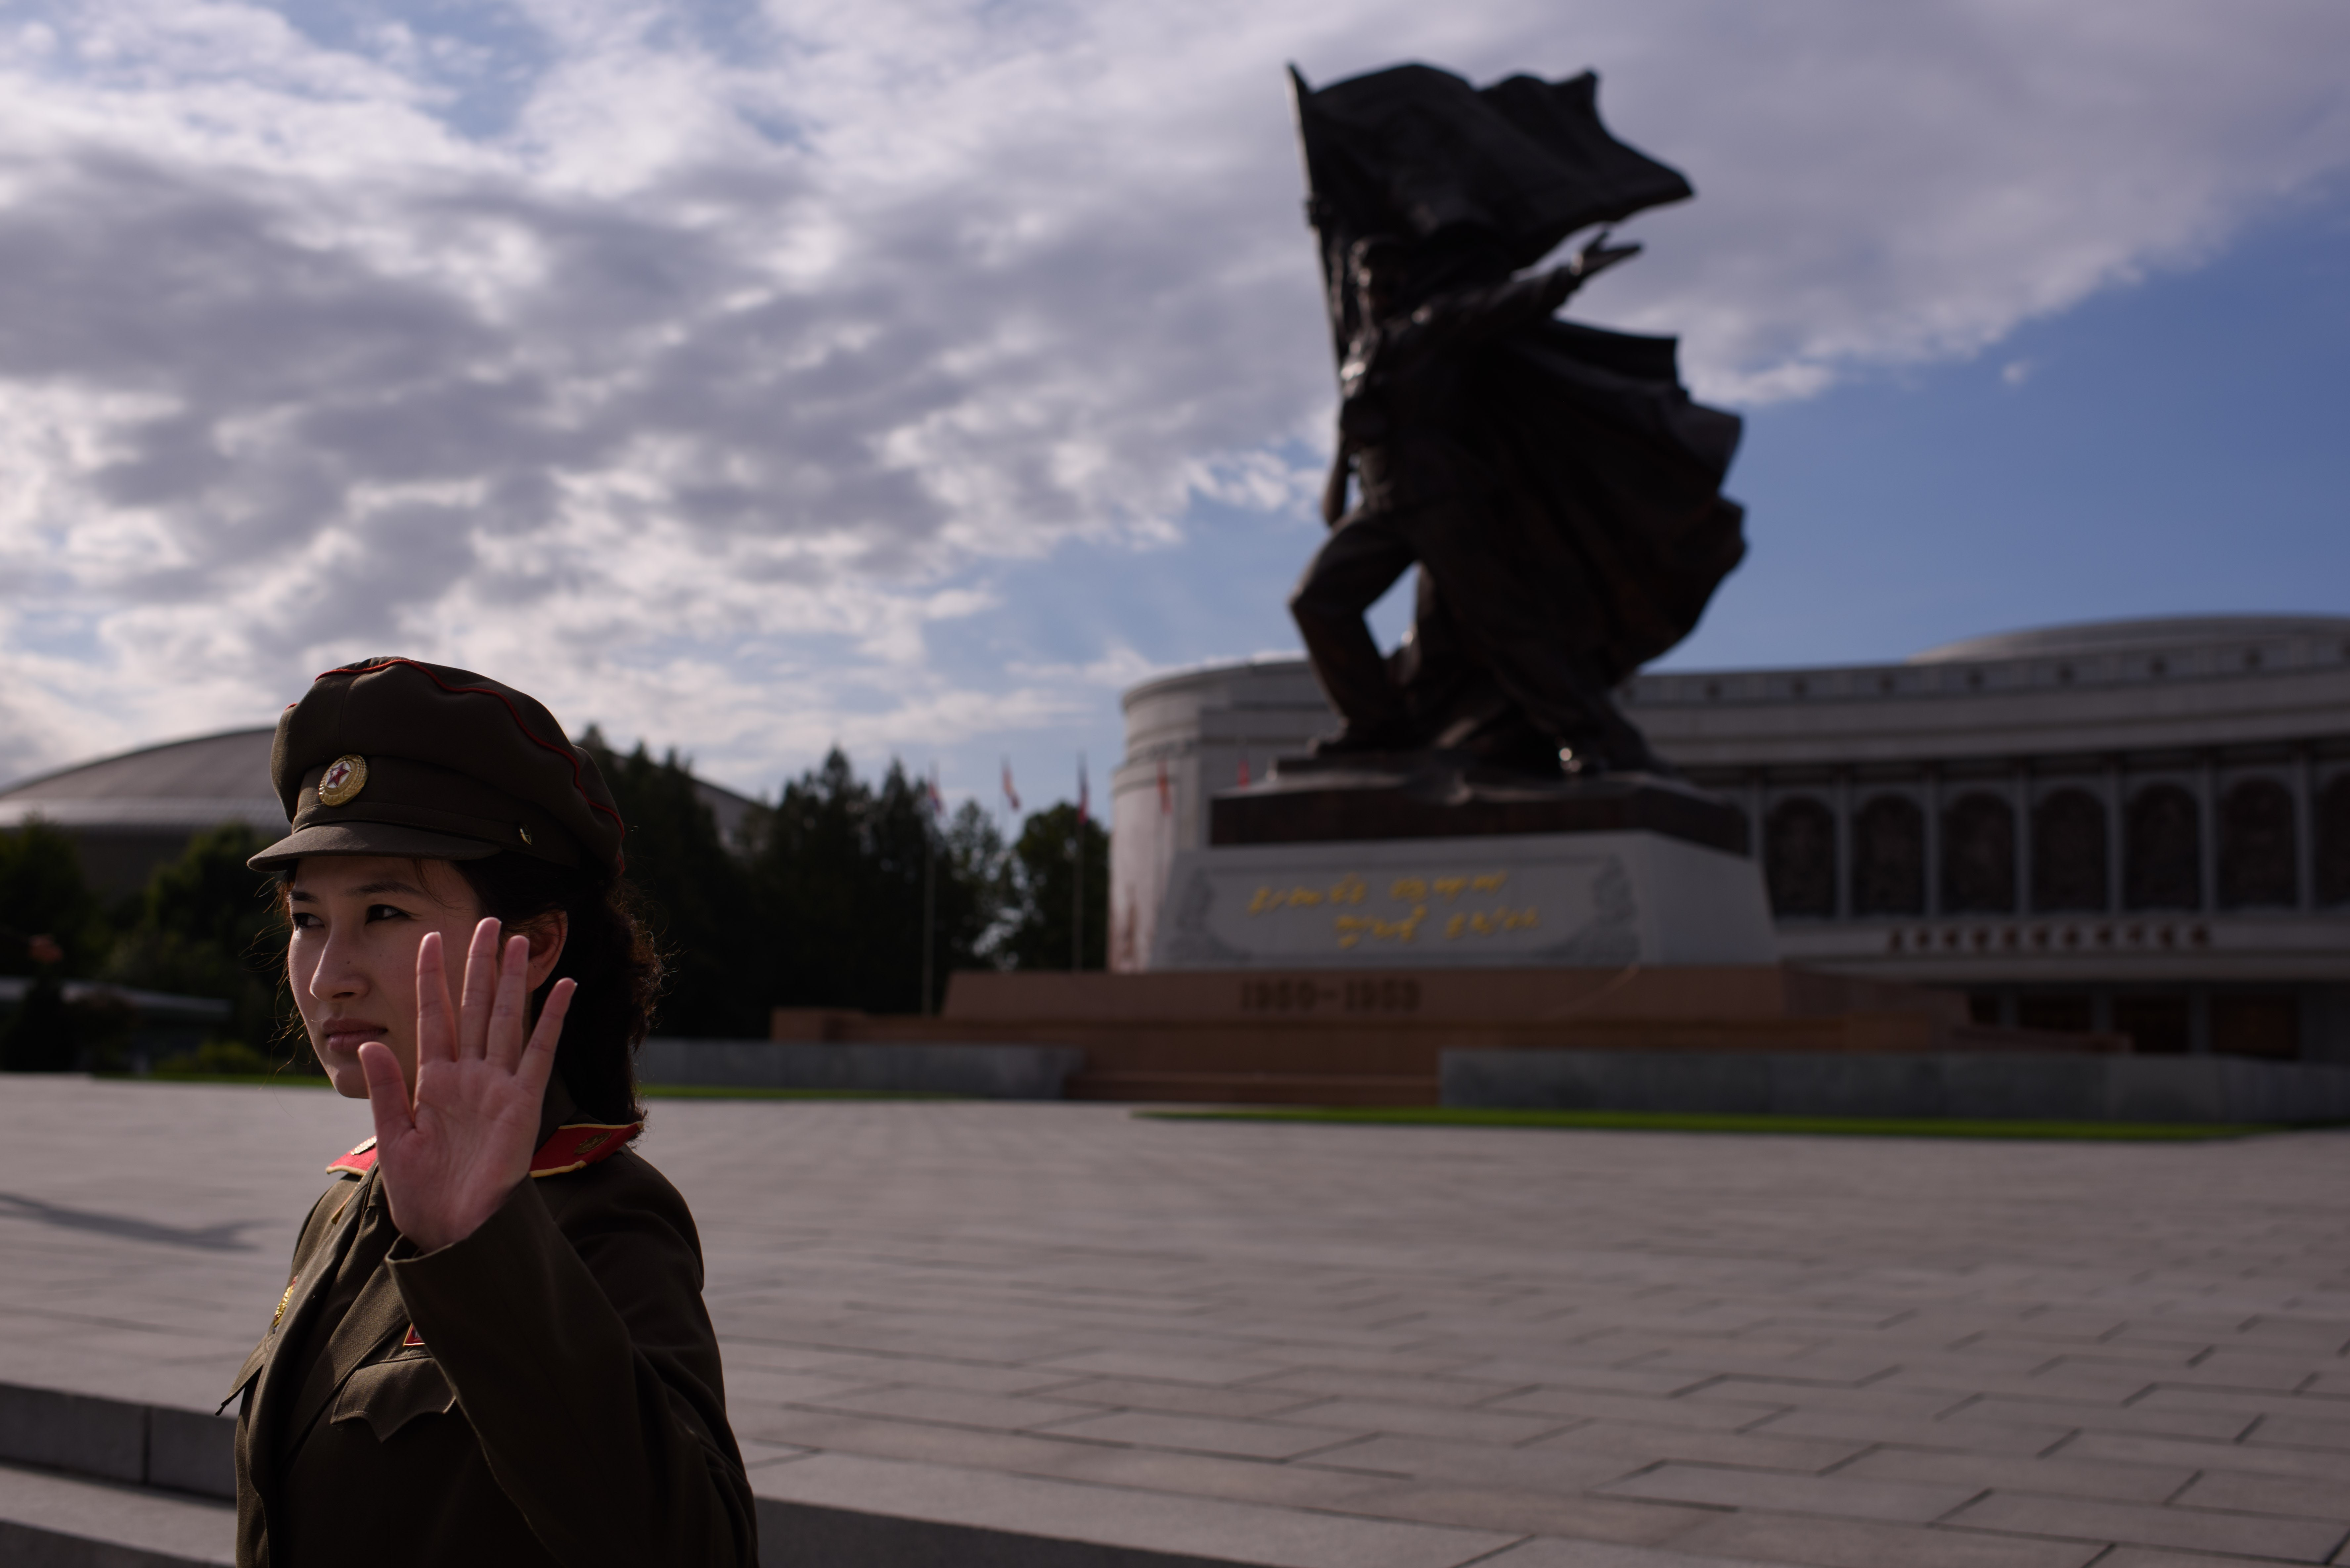 10 Signs That Should Tell You Visiting North Korea Is a Terrible Idea